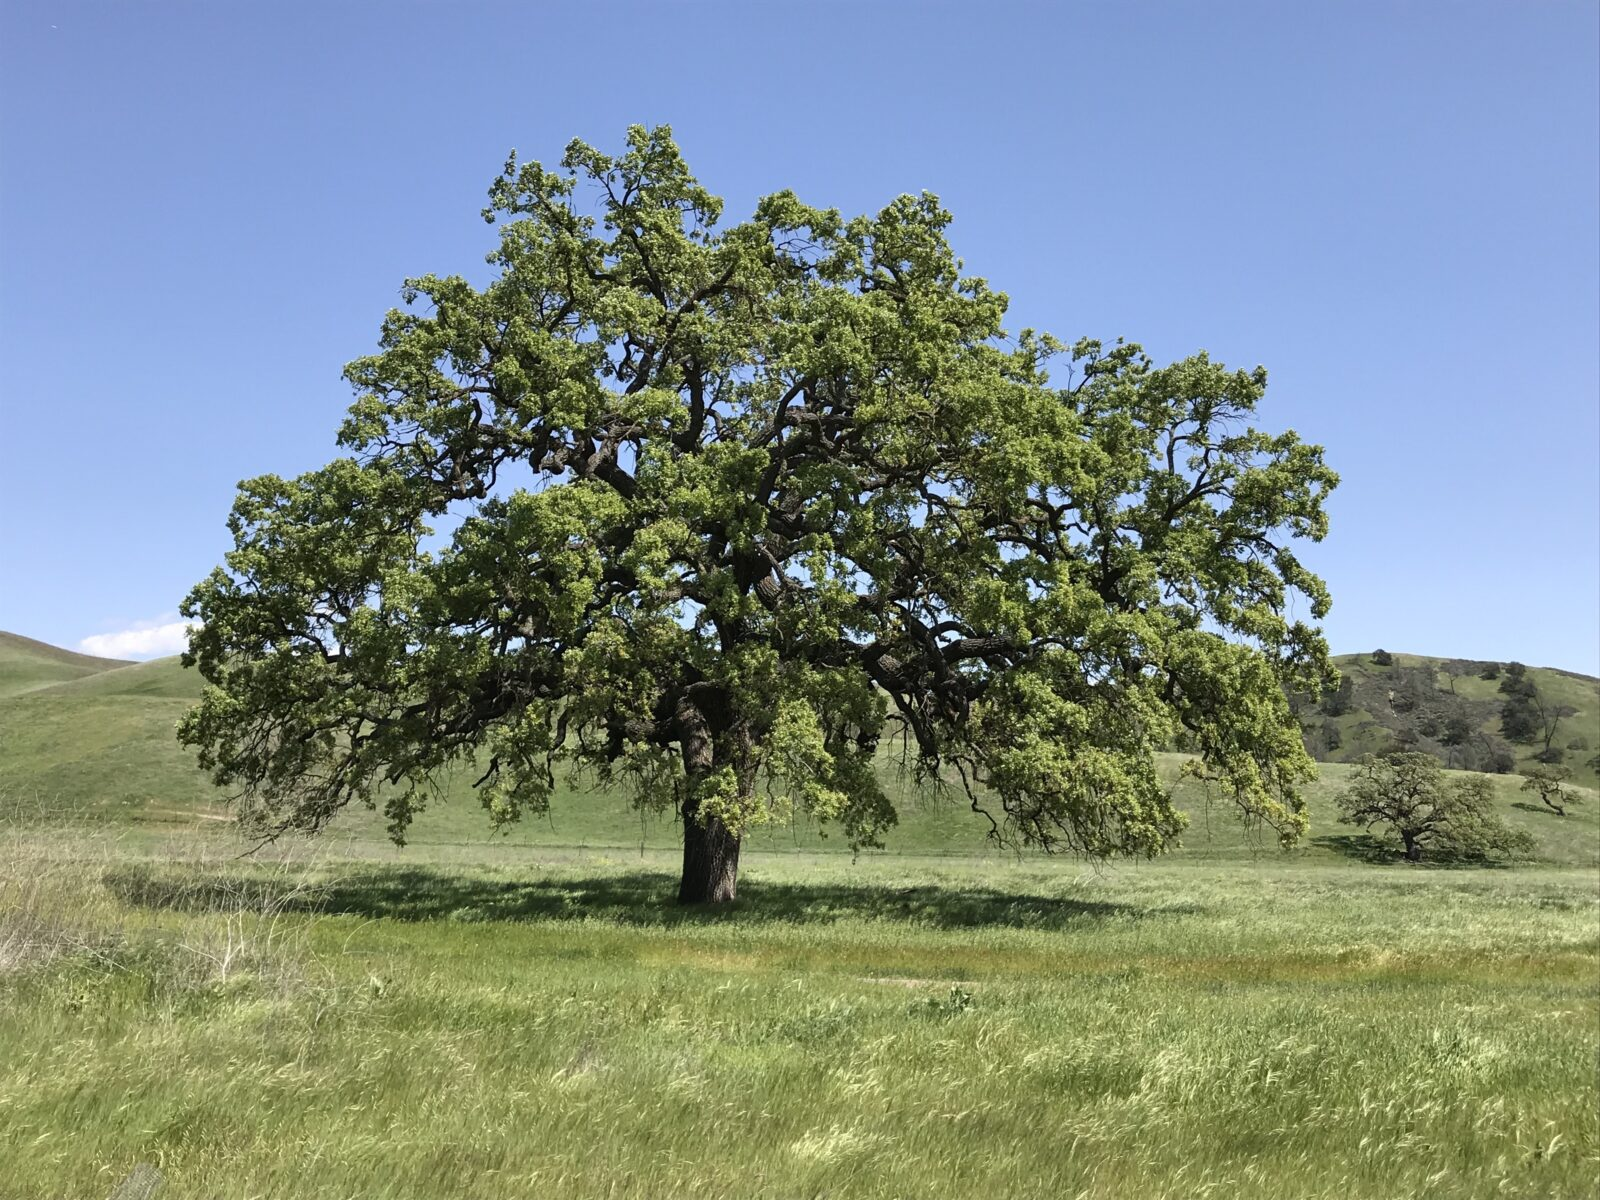 one of california's iconic tree species offers lessons for conservation